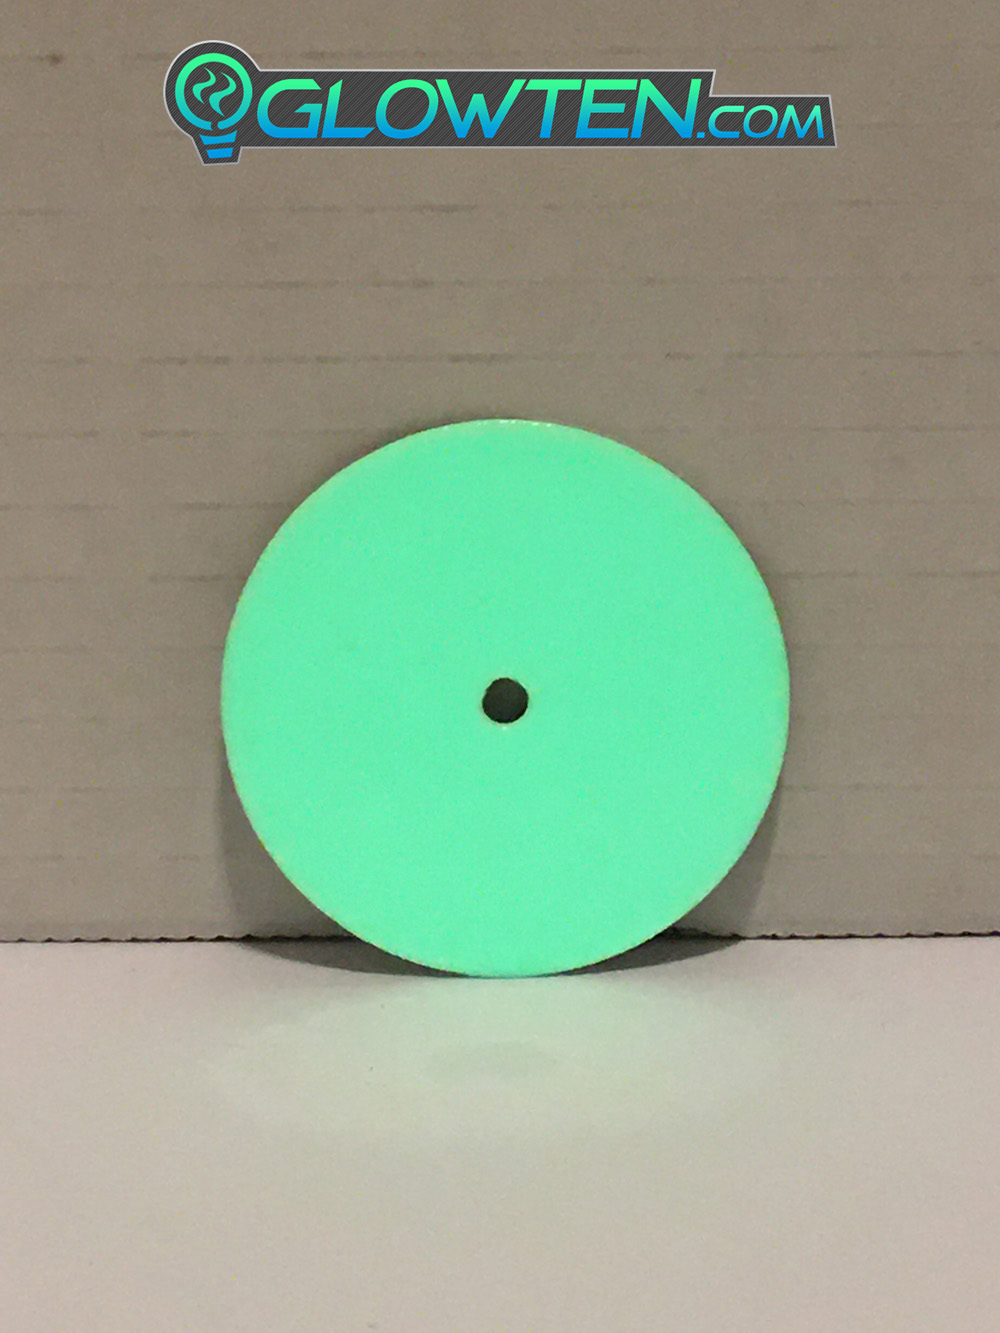 GLOWTEN.com - Sides Of Roads, Sides Of Small Bridges, Traffic Marker Round Point Circle Glow In The Dark Sign Light Guide Eco Friendly Traffic Marker Photoluminescent Aluminum Body Material, Any Poles picture photo cap preview pic image search 1